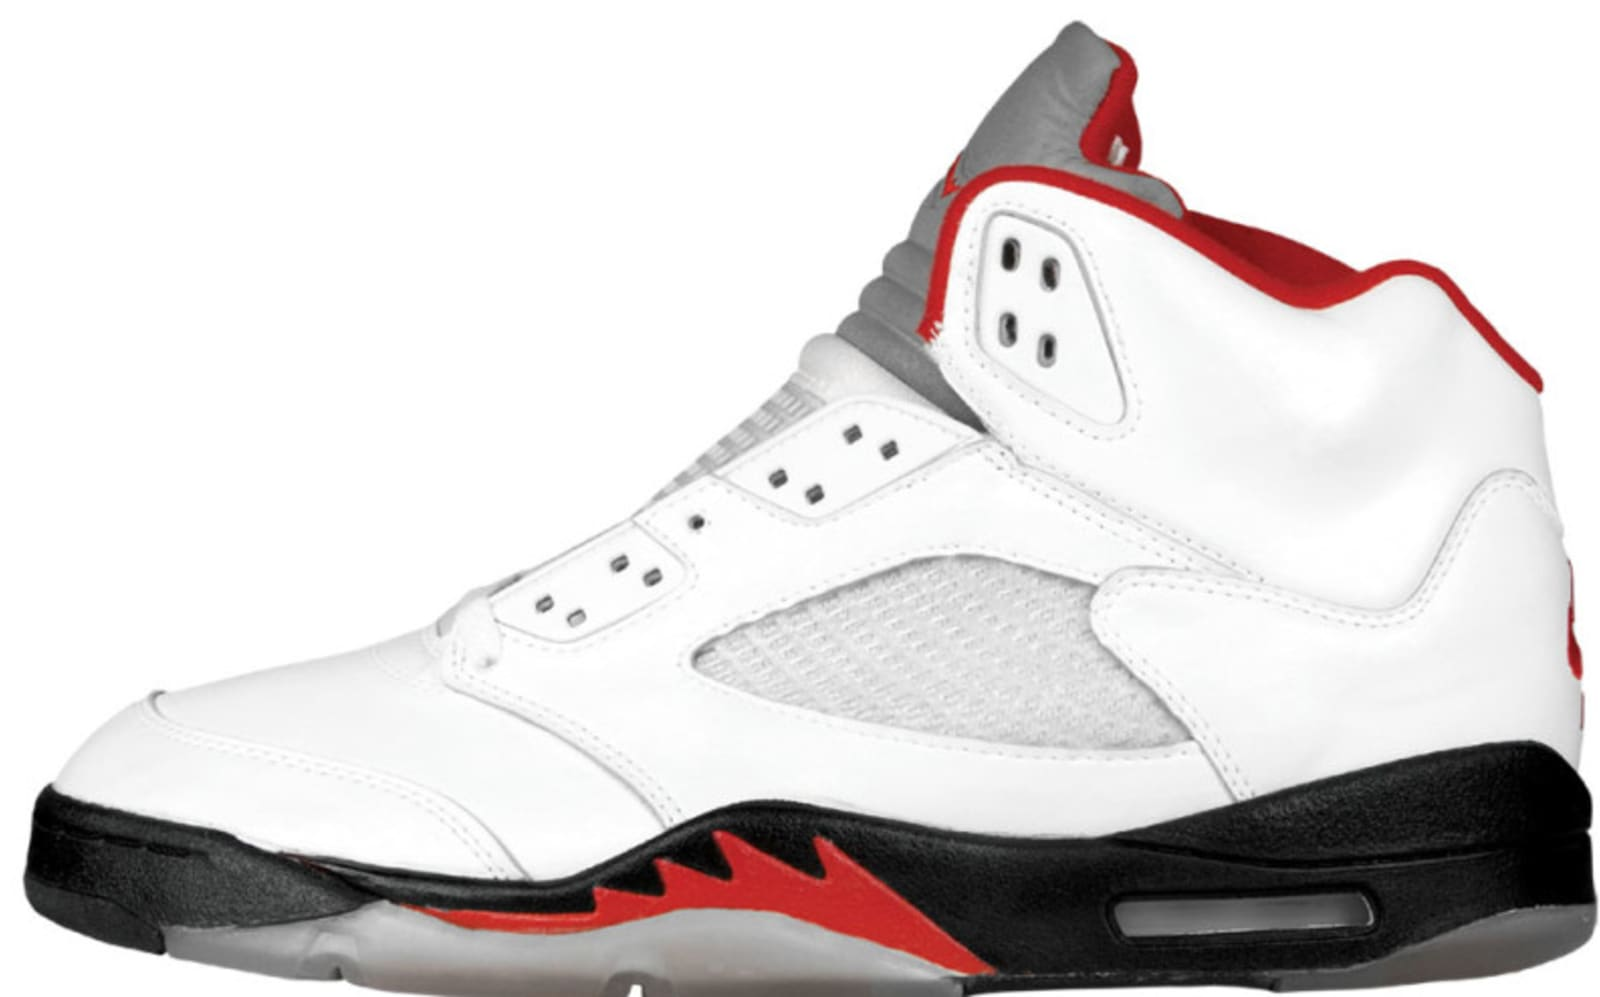 exclusive shoes outlet on sale good quality Air Jordan 5 'Fire Red/Silver Tongue' Retro 2020 Release ...